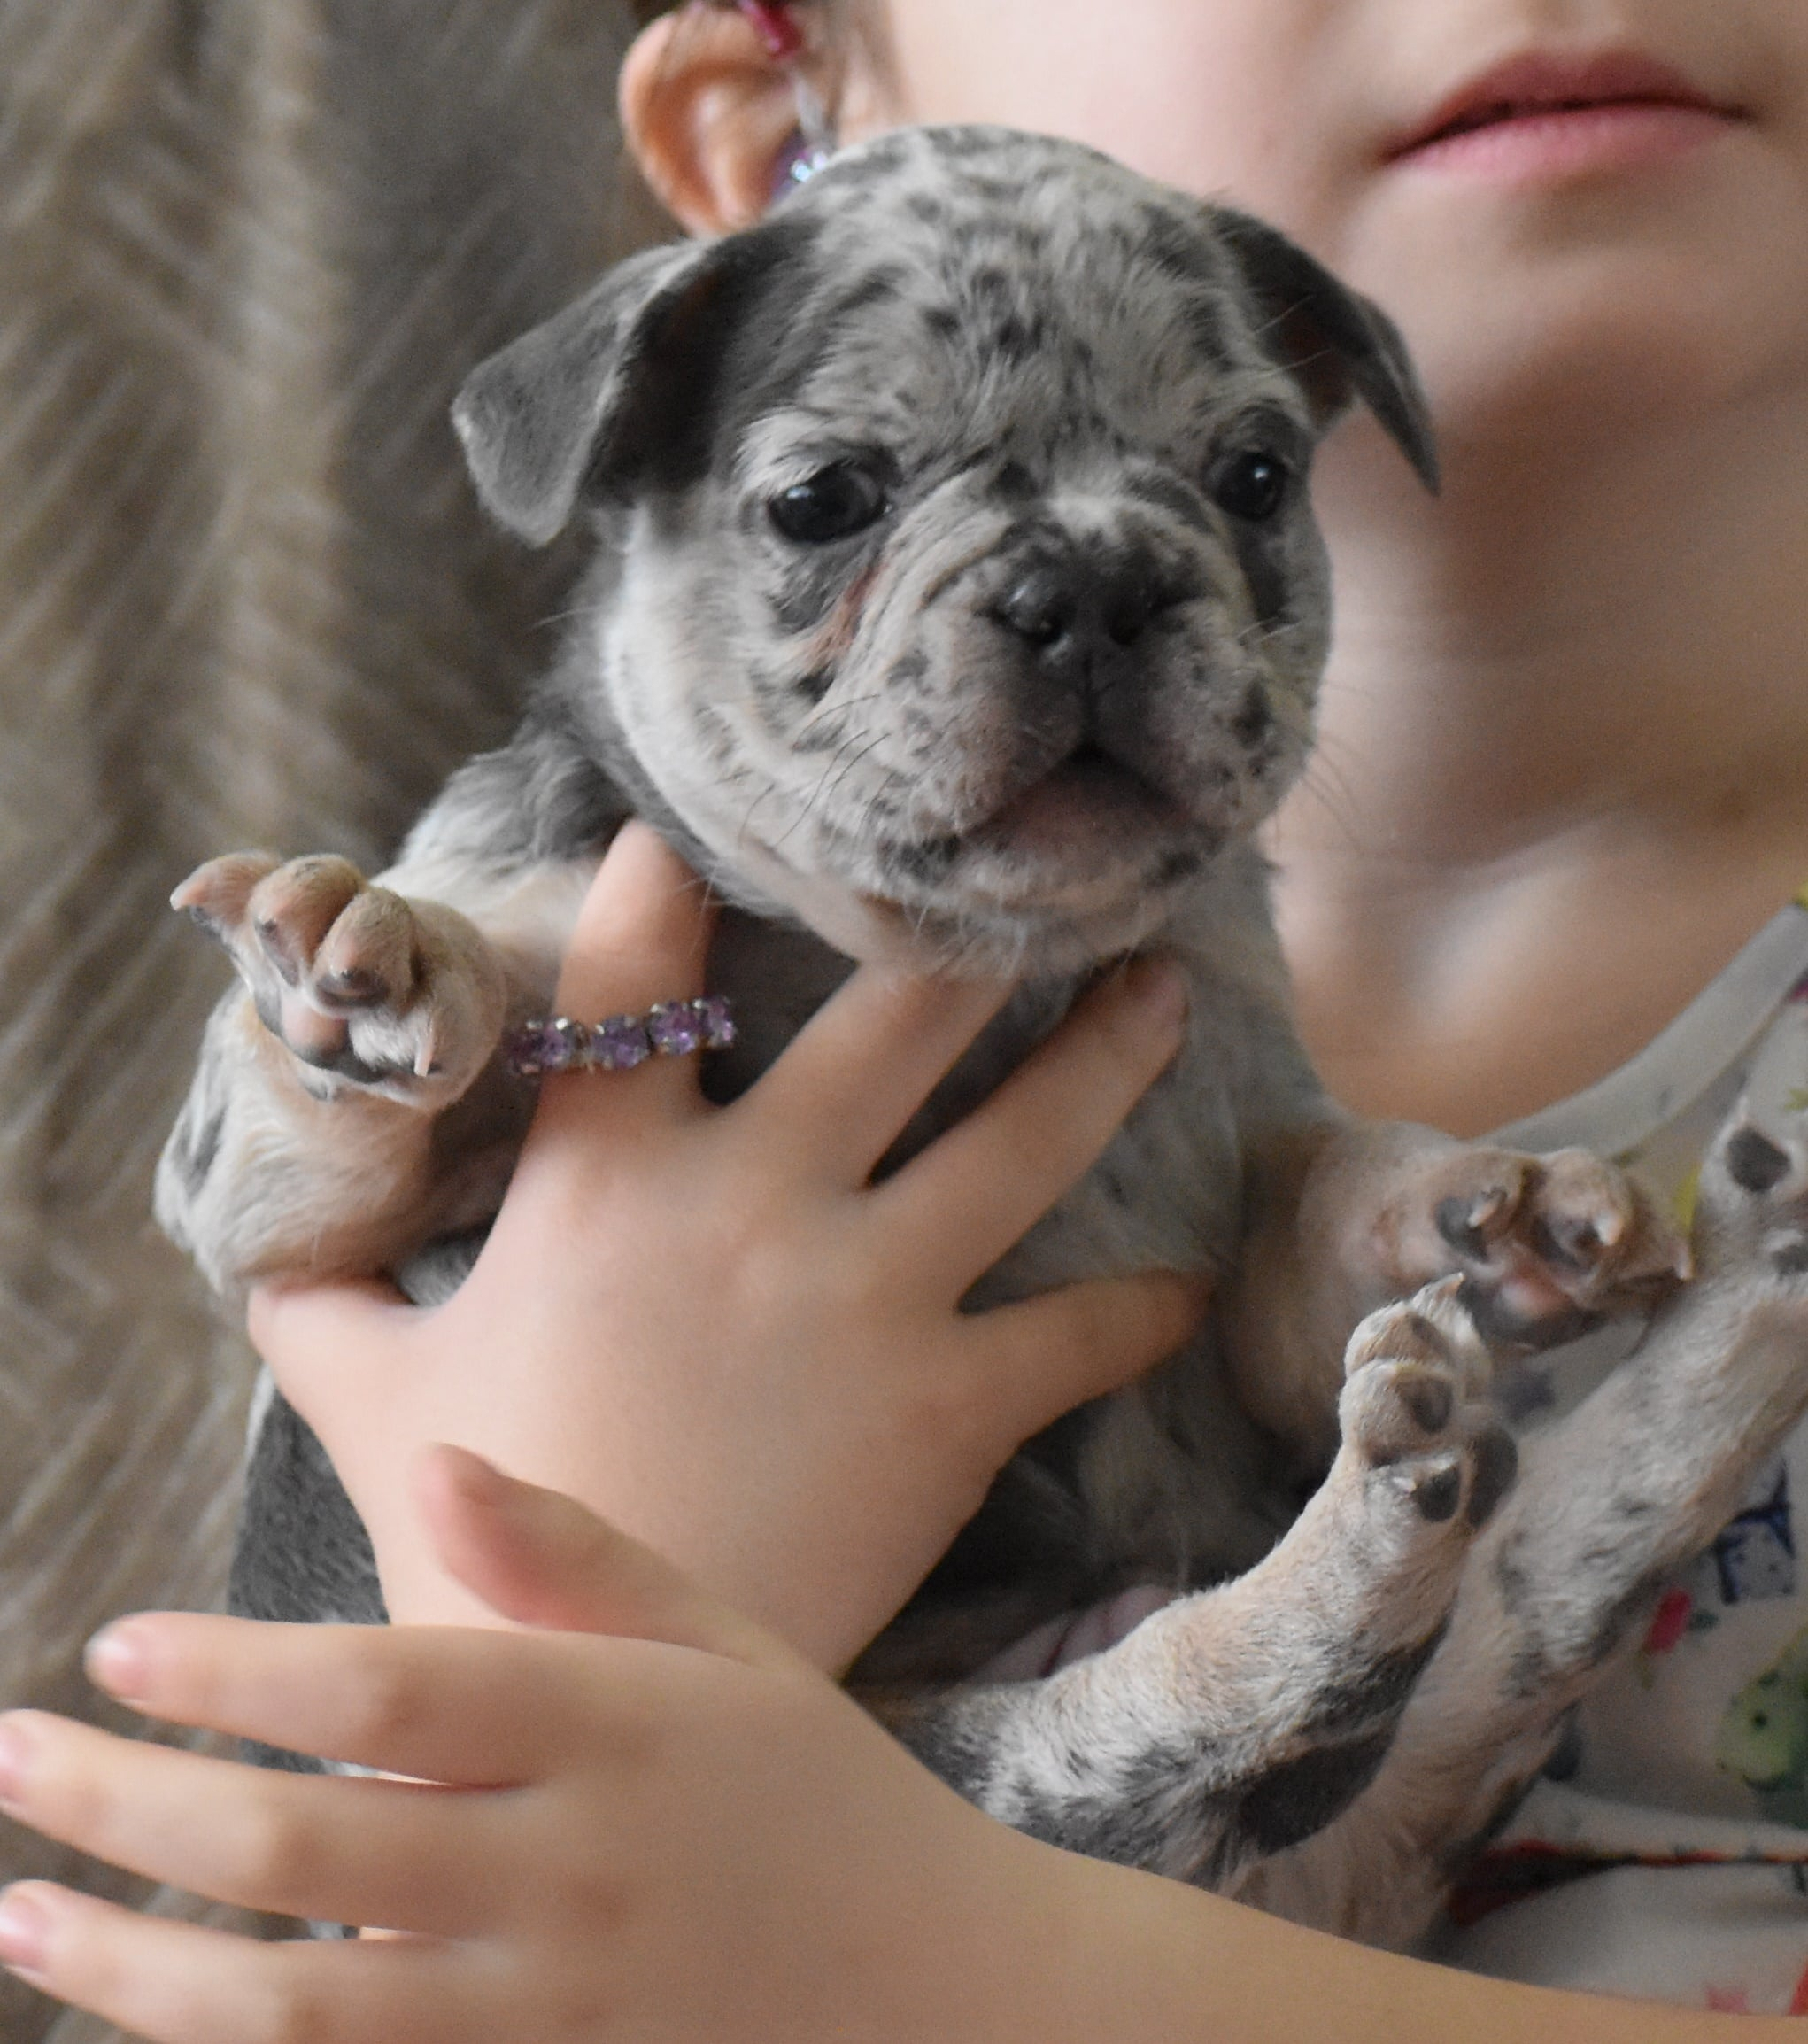 Kid Holding Puppy with Beaded collar